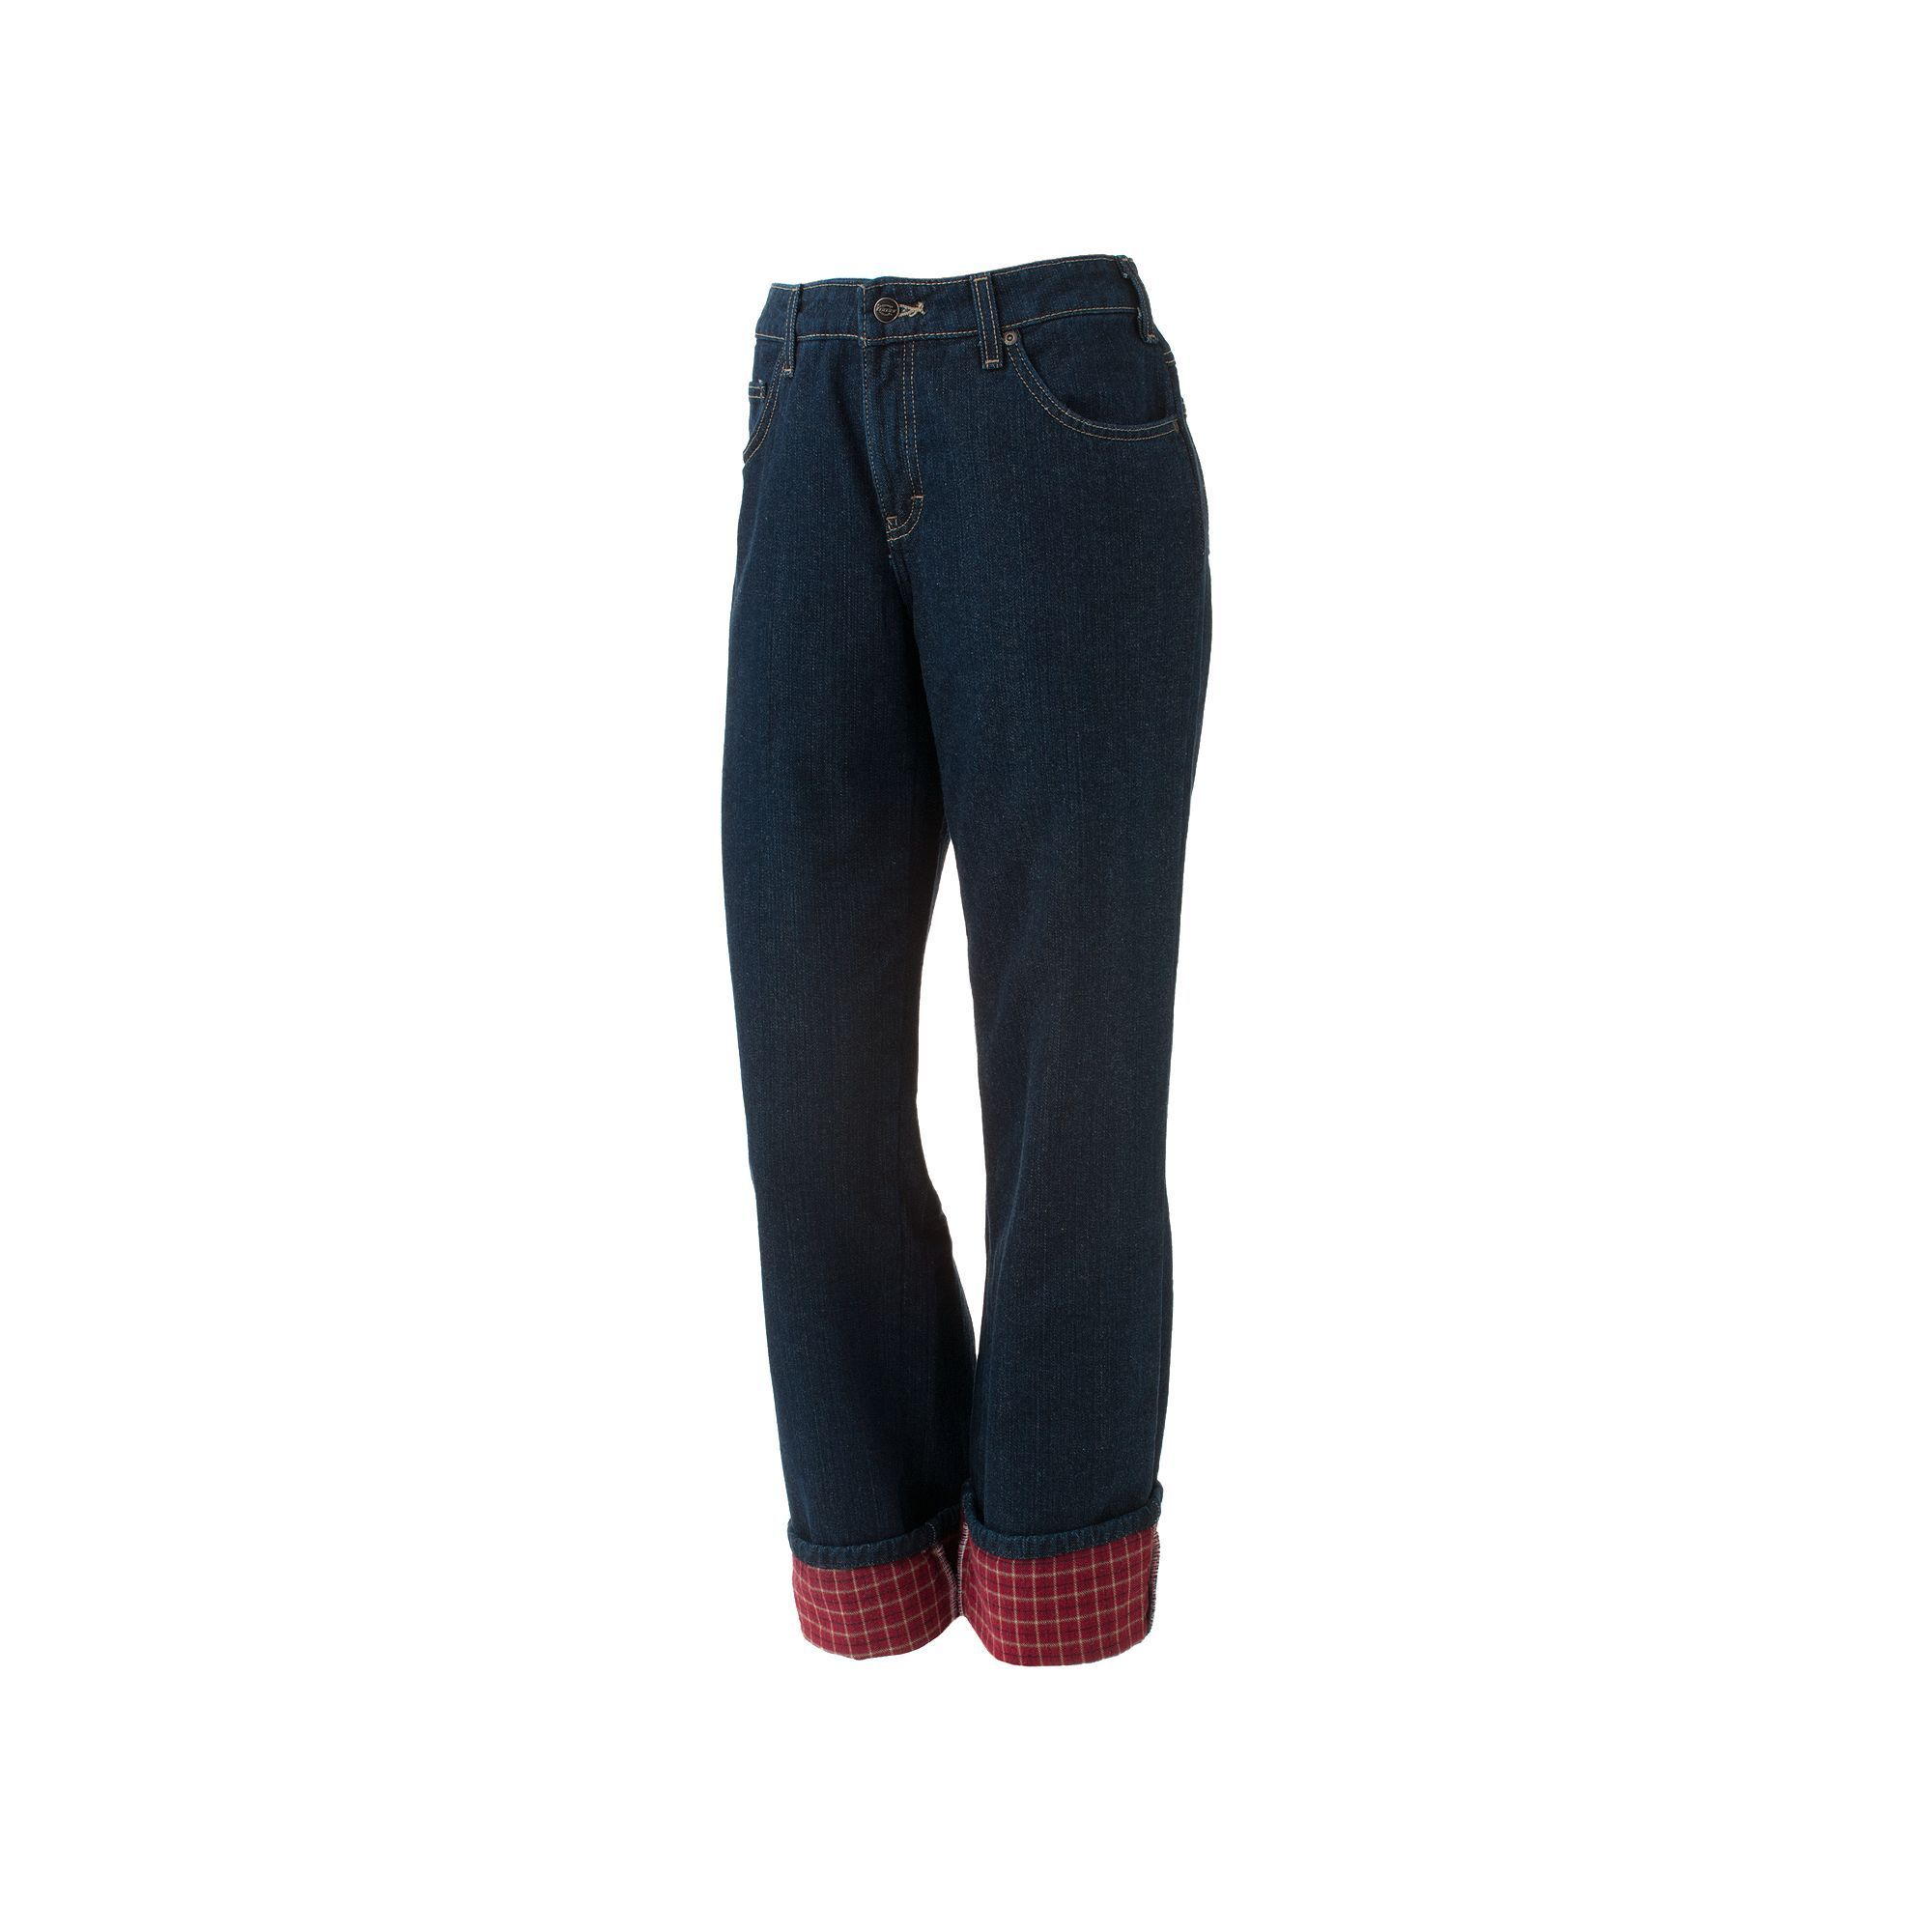 927b523d7c5 Dickies Flannel-Lined Straight-Leg Jeans - Women s